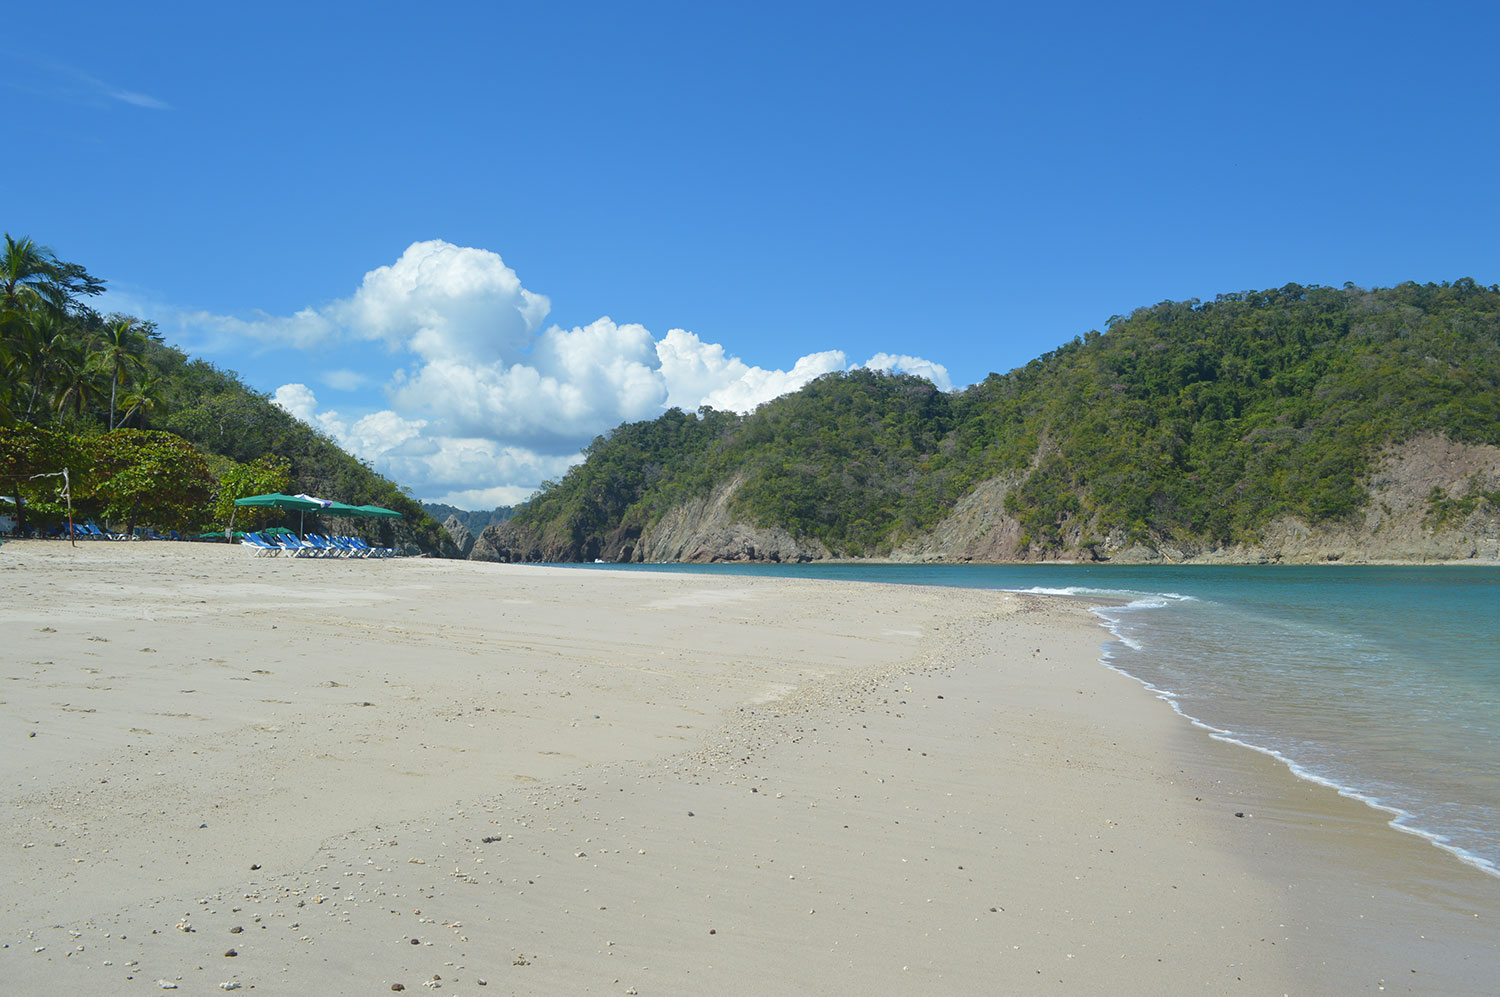 We did say white sand and turquoise water... ; )